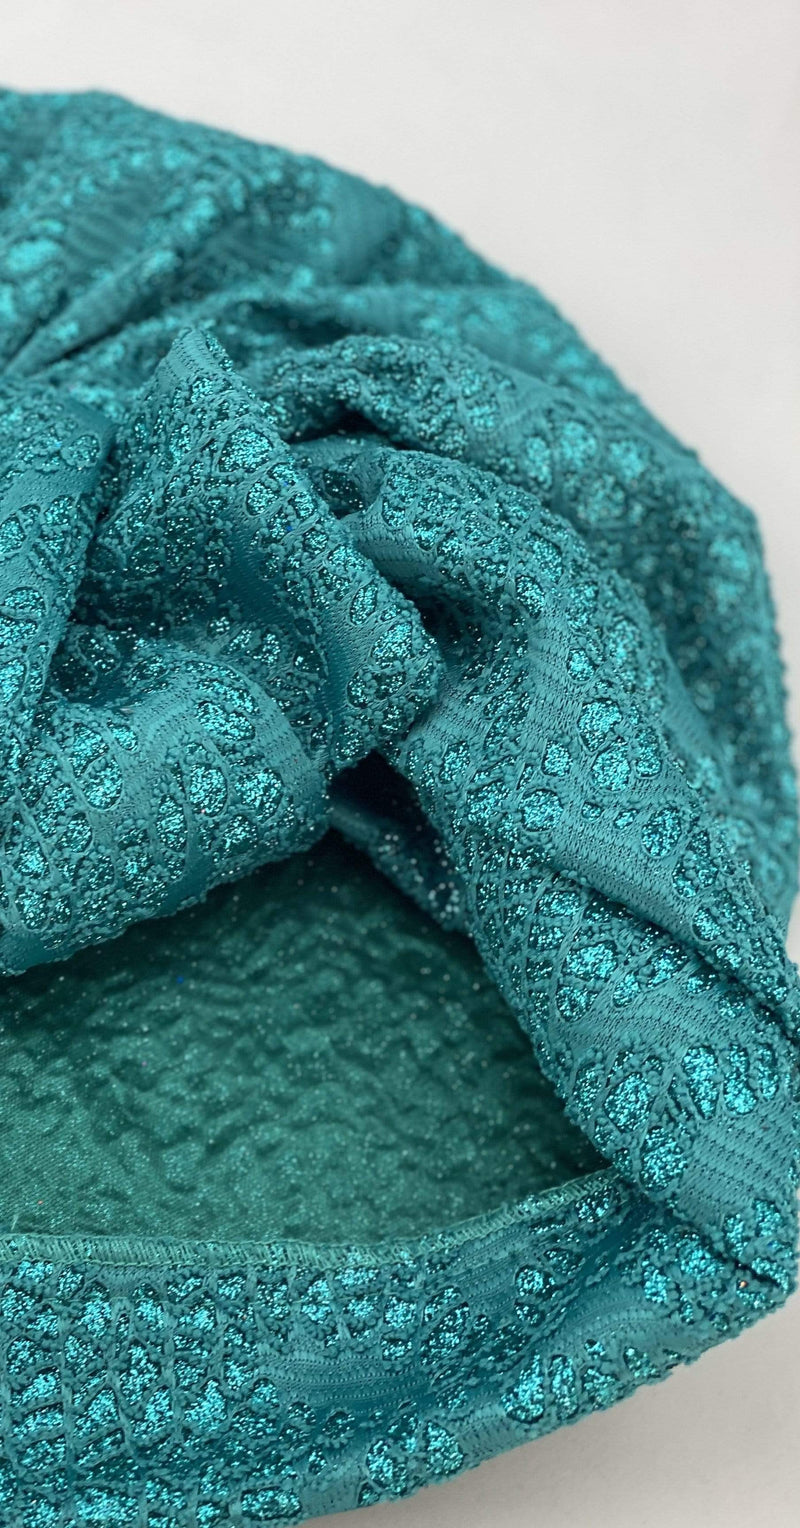 Hijabsandstuff Specials Turban Shimmer Bow - Turquoise Handmade Luxury Fashion Women Headwrap